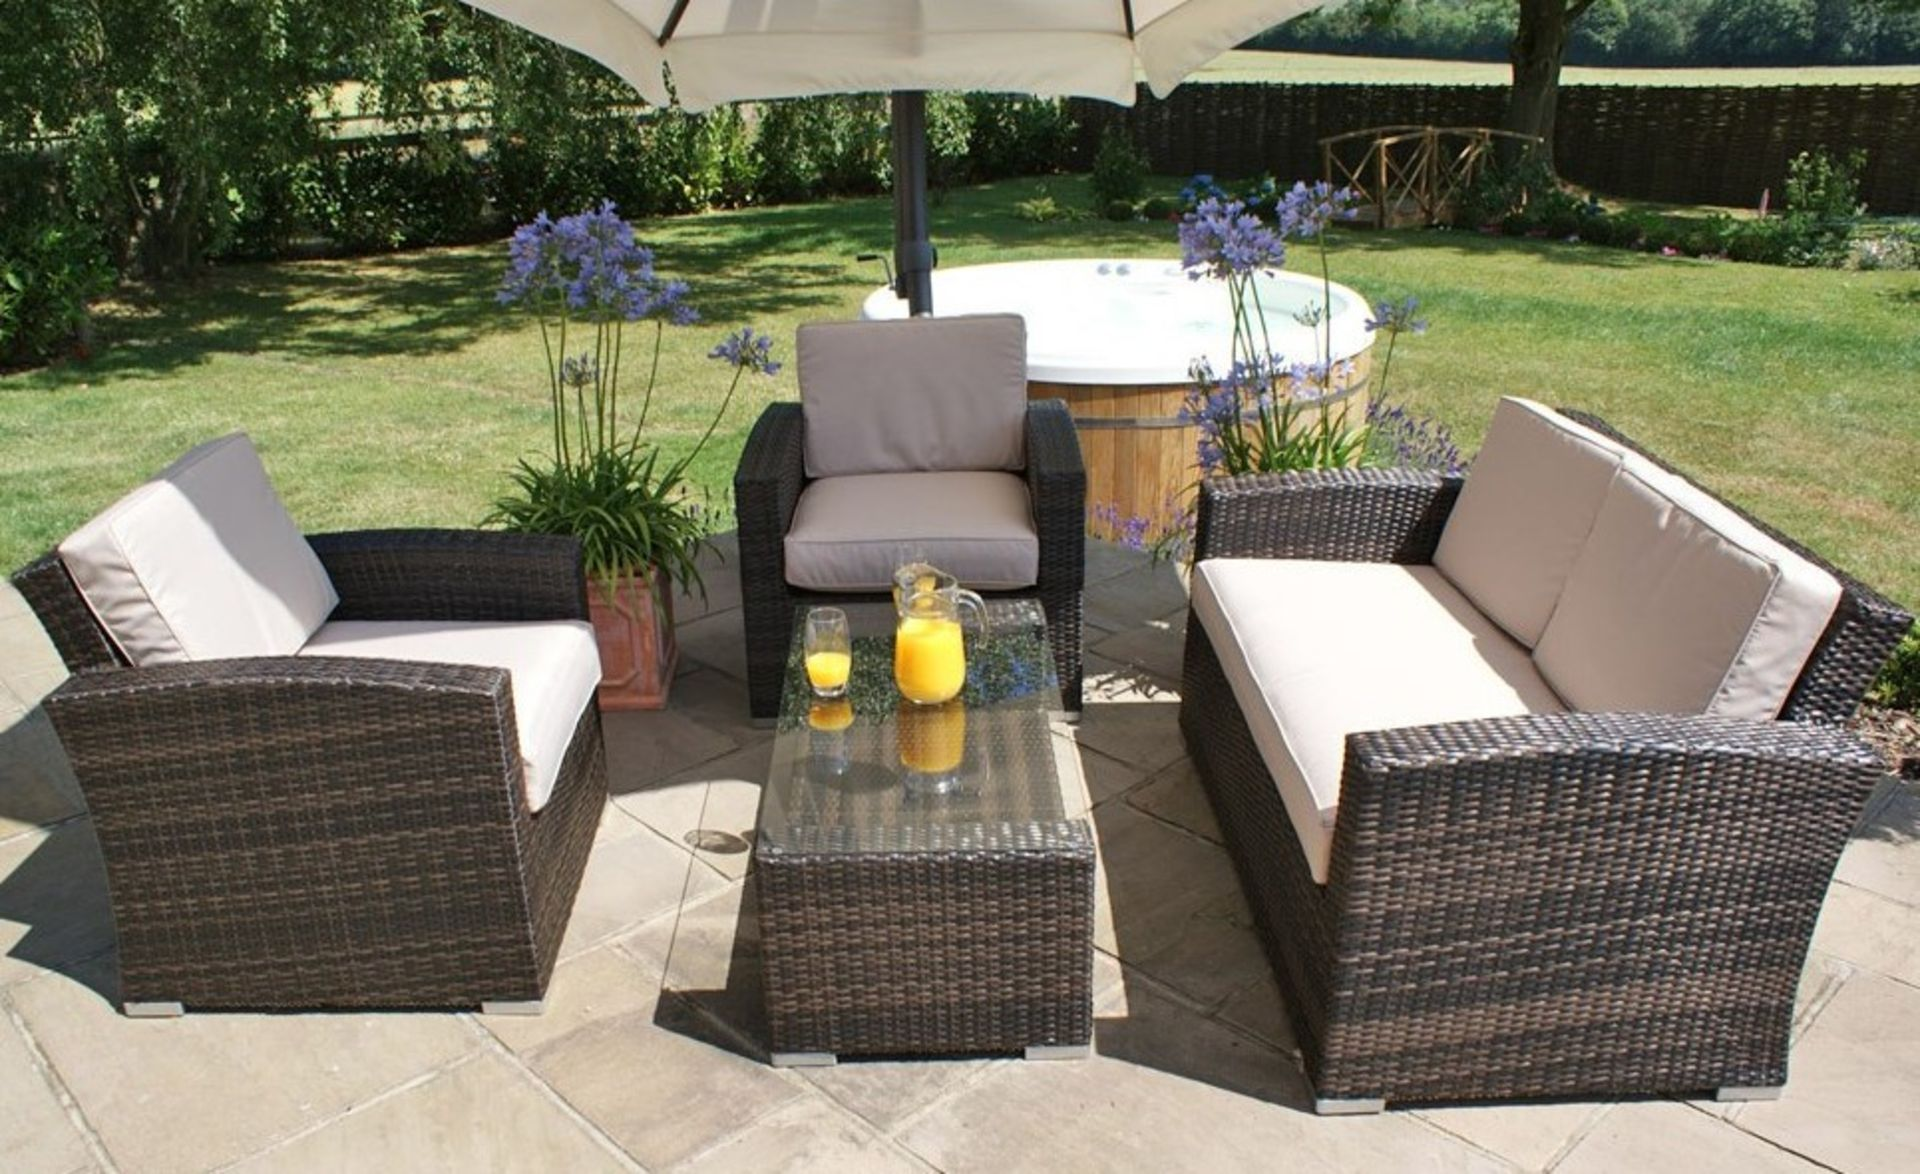 + VAT Brand New Chelsea Garden Company 4-Piece Grey Rattan Outdoor Sofa Set With Grey Cushions - - Image 2 of 2